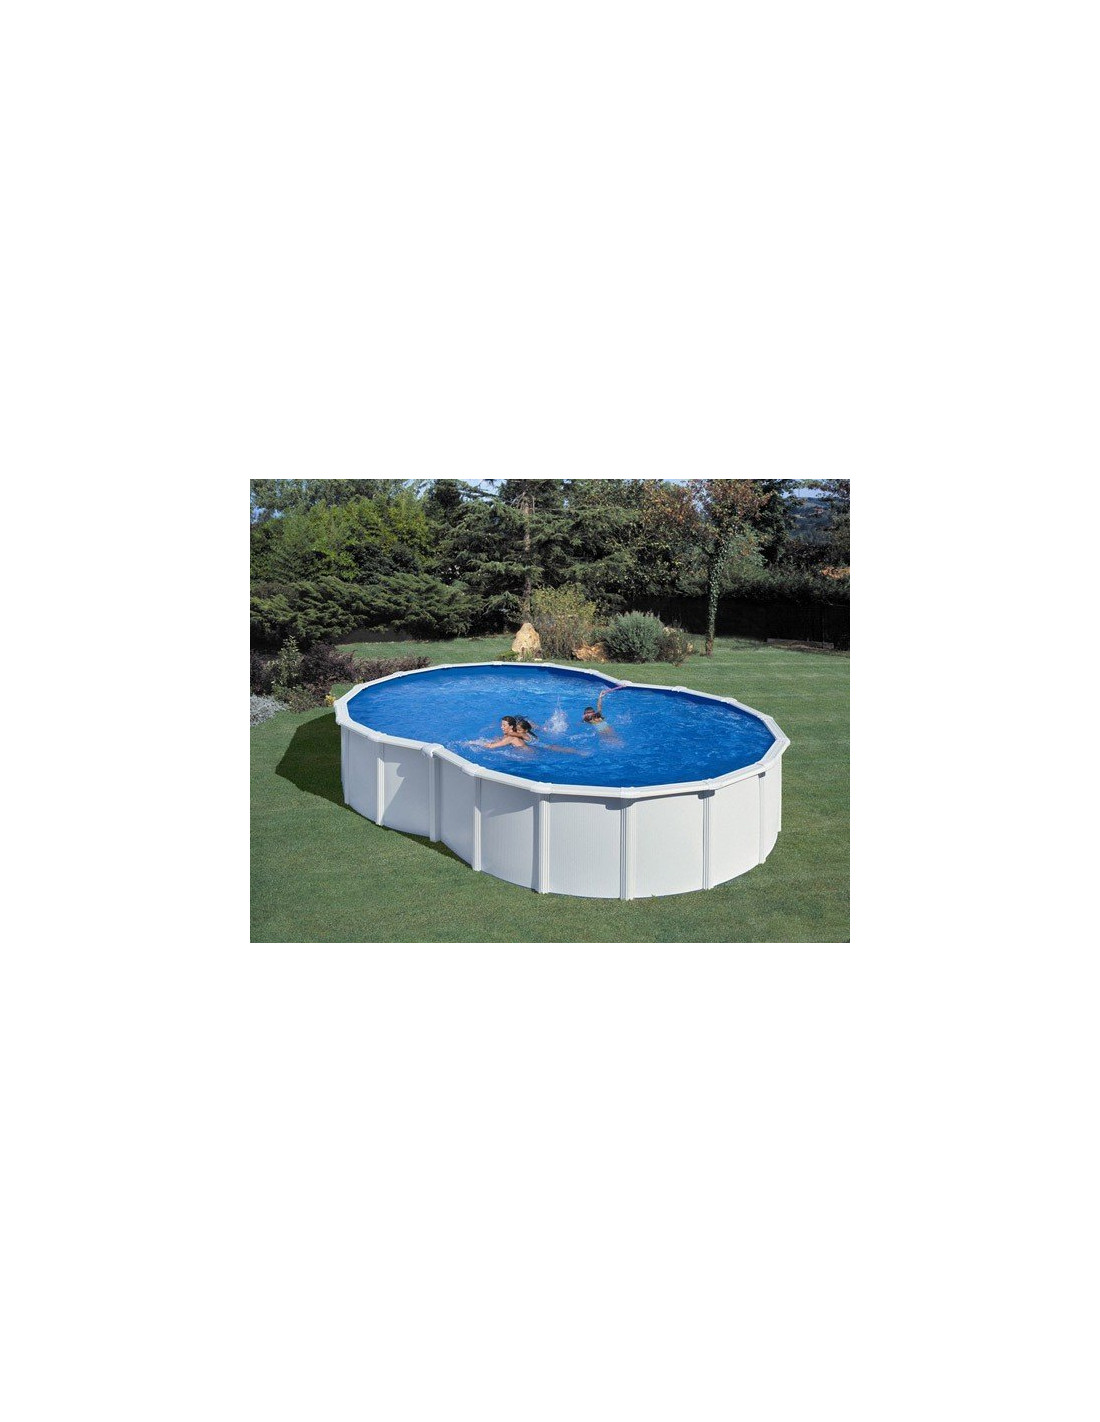 liner piscine hors sol liner piscine ronde swirl garden leisure liner piscine liner piscine. Black Bedroom Furniture Sets. Home Design Ideas